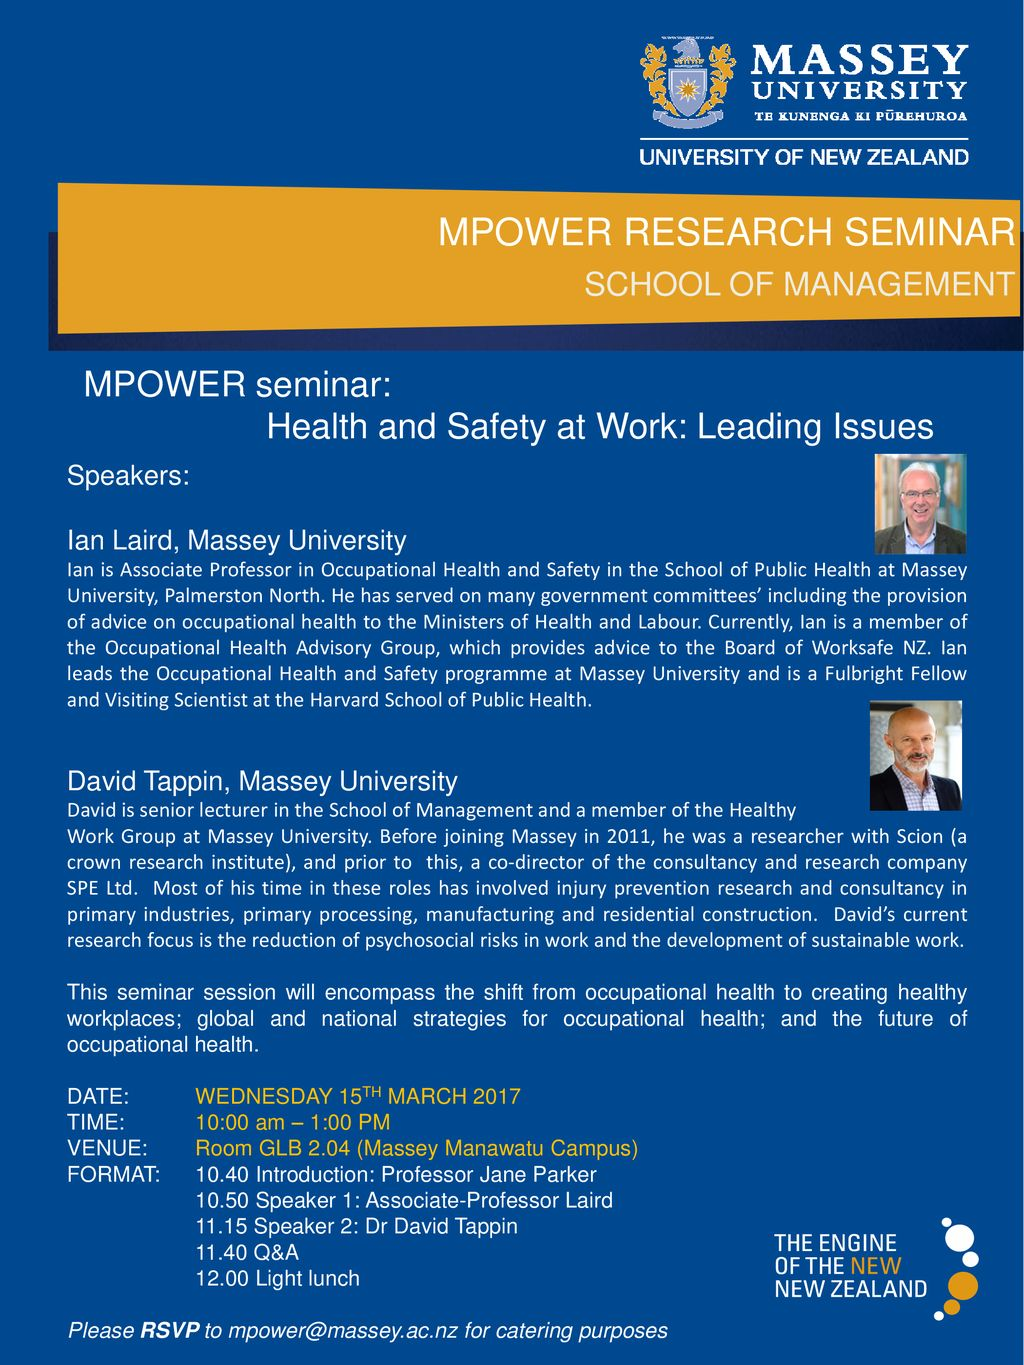 MPOWER RESEARCH SEMINAR - ppt download